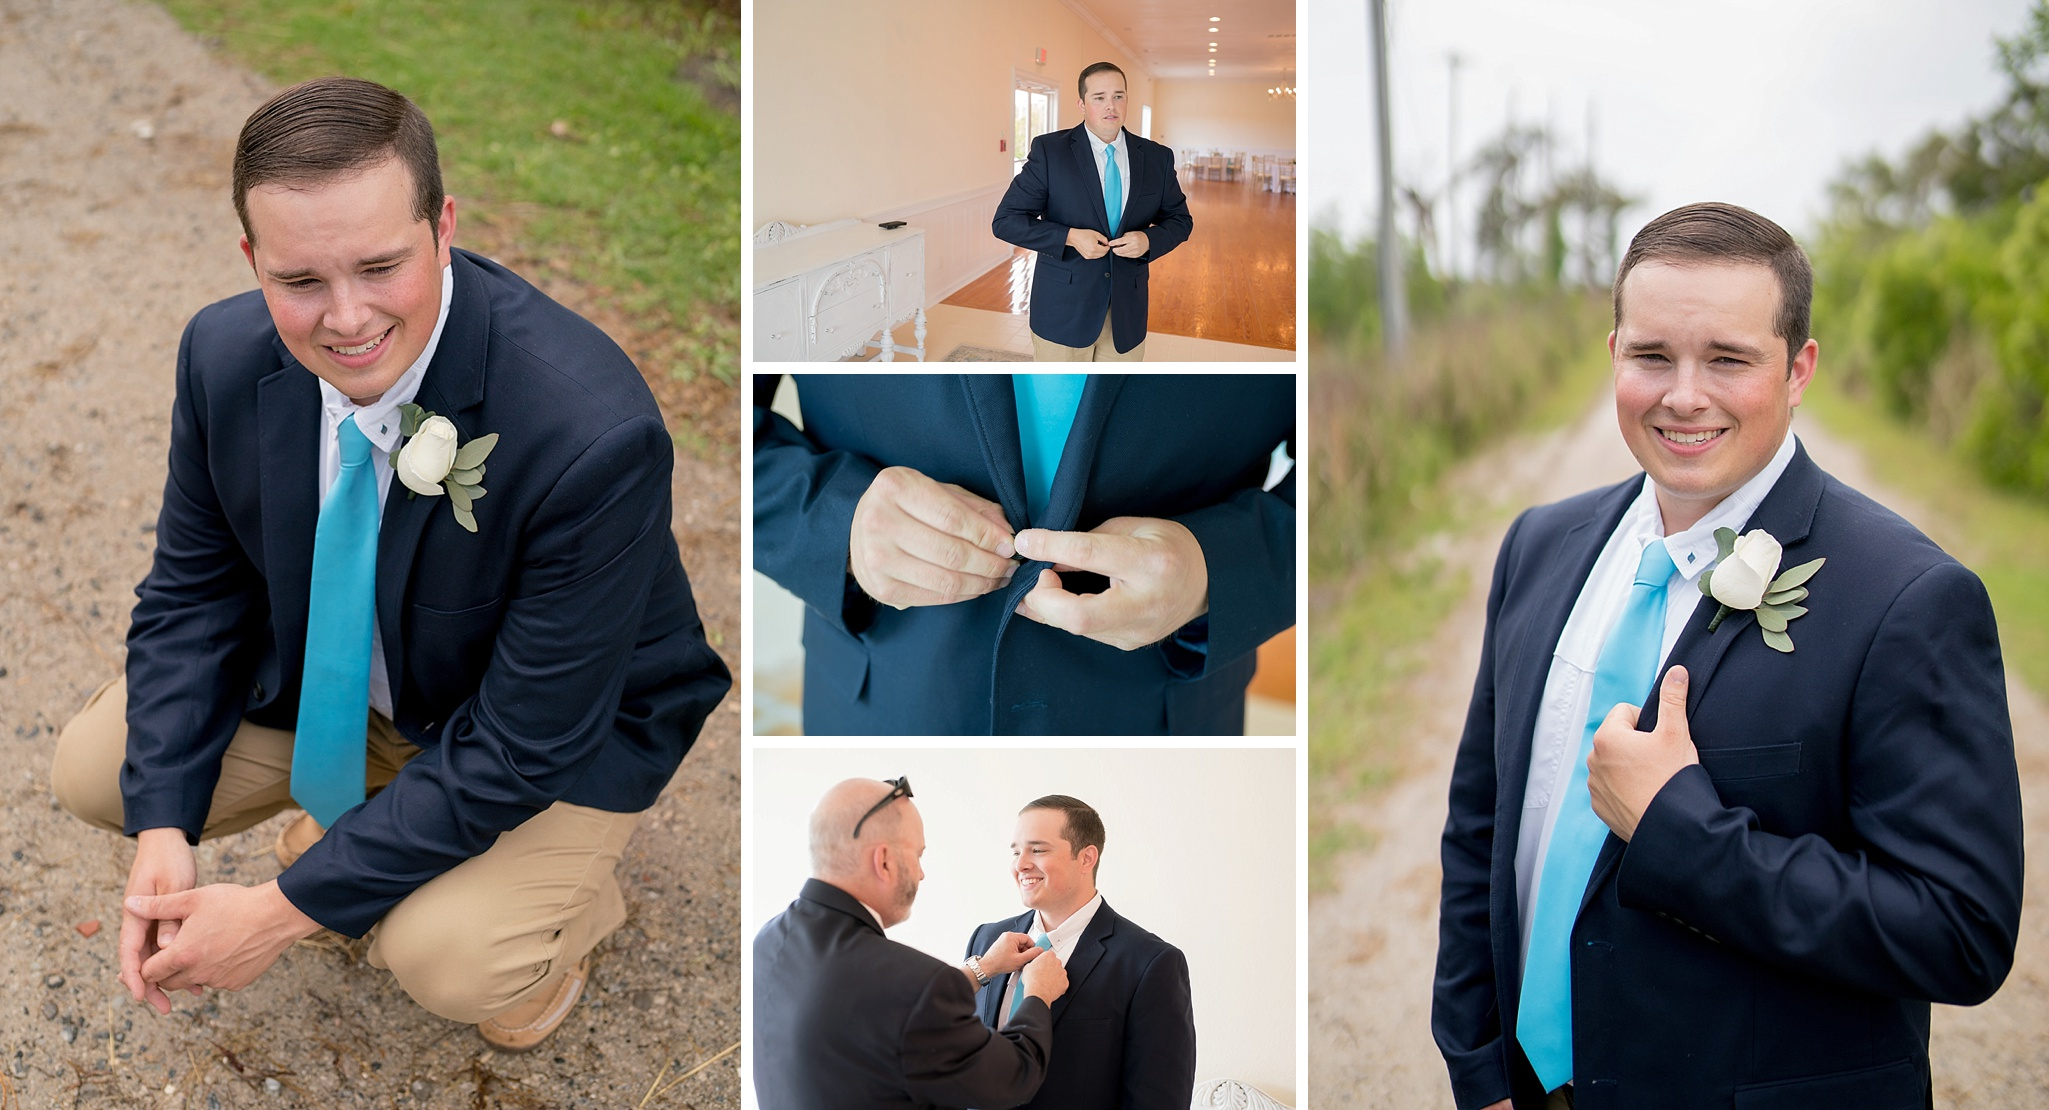 Manteo-NC-Wedding-Photographer-113.jpg